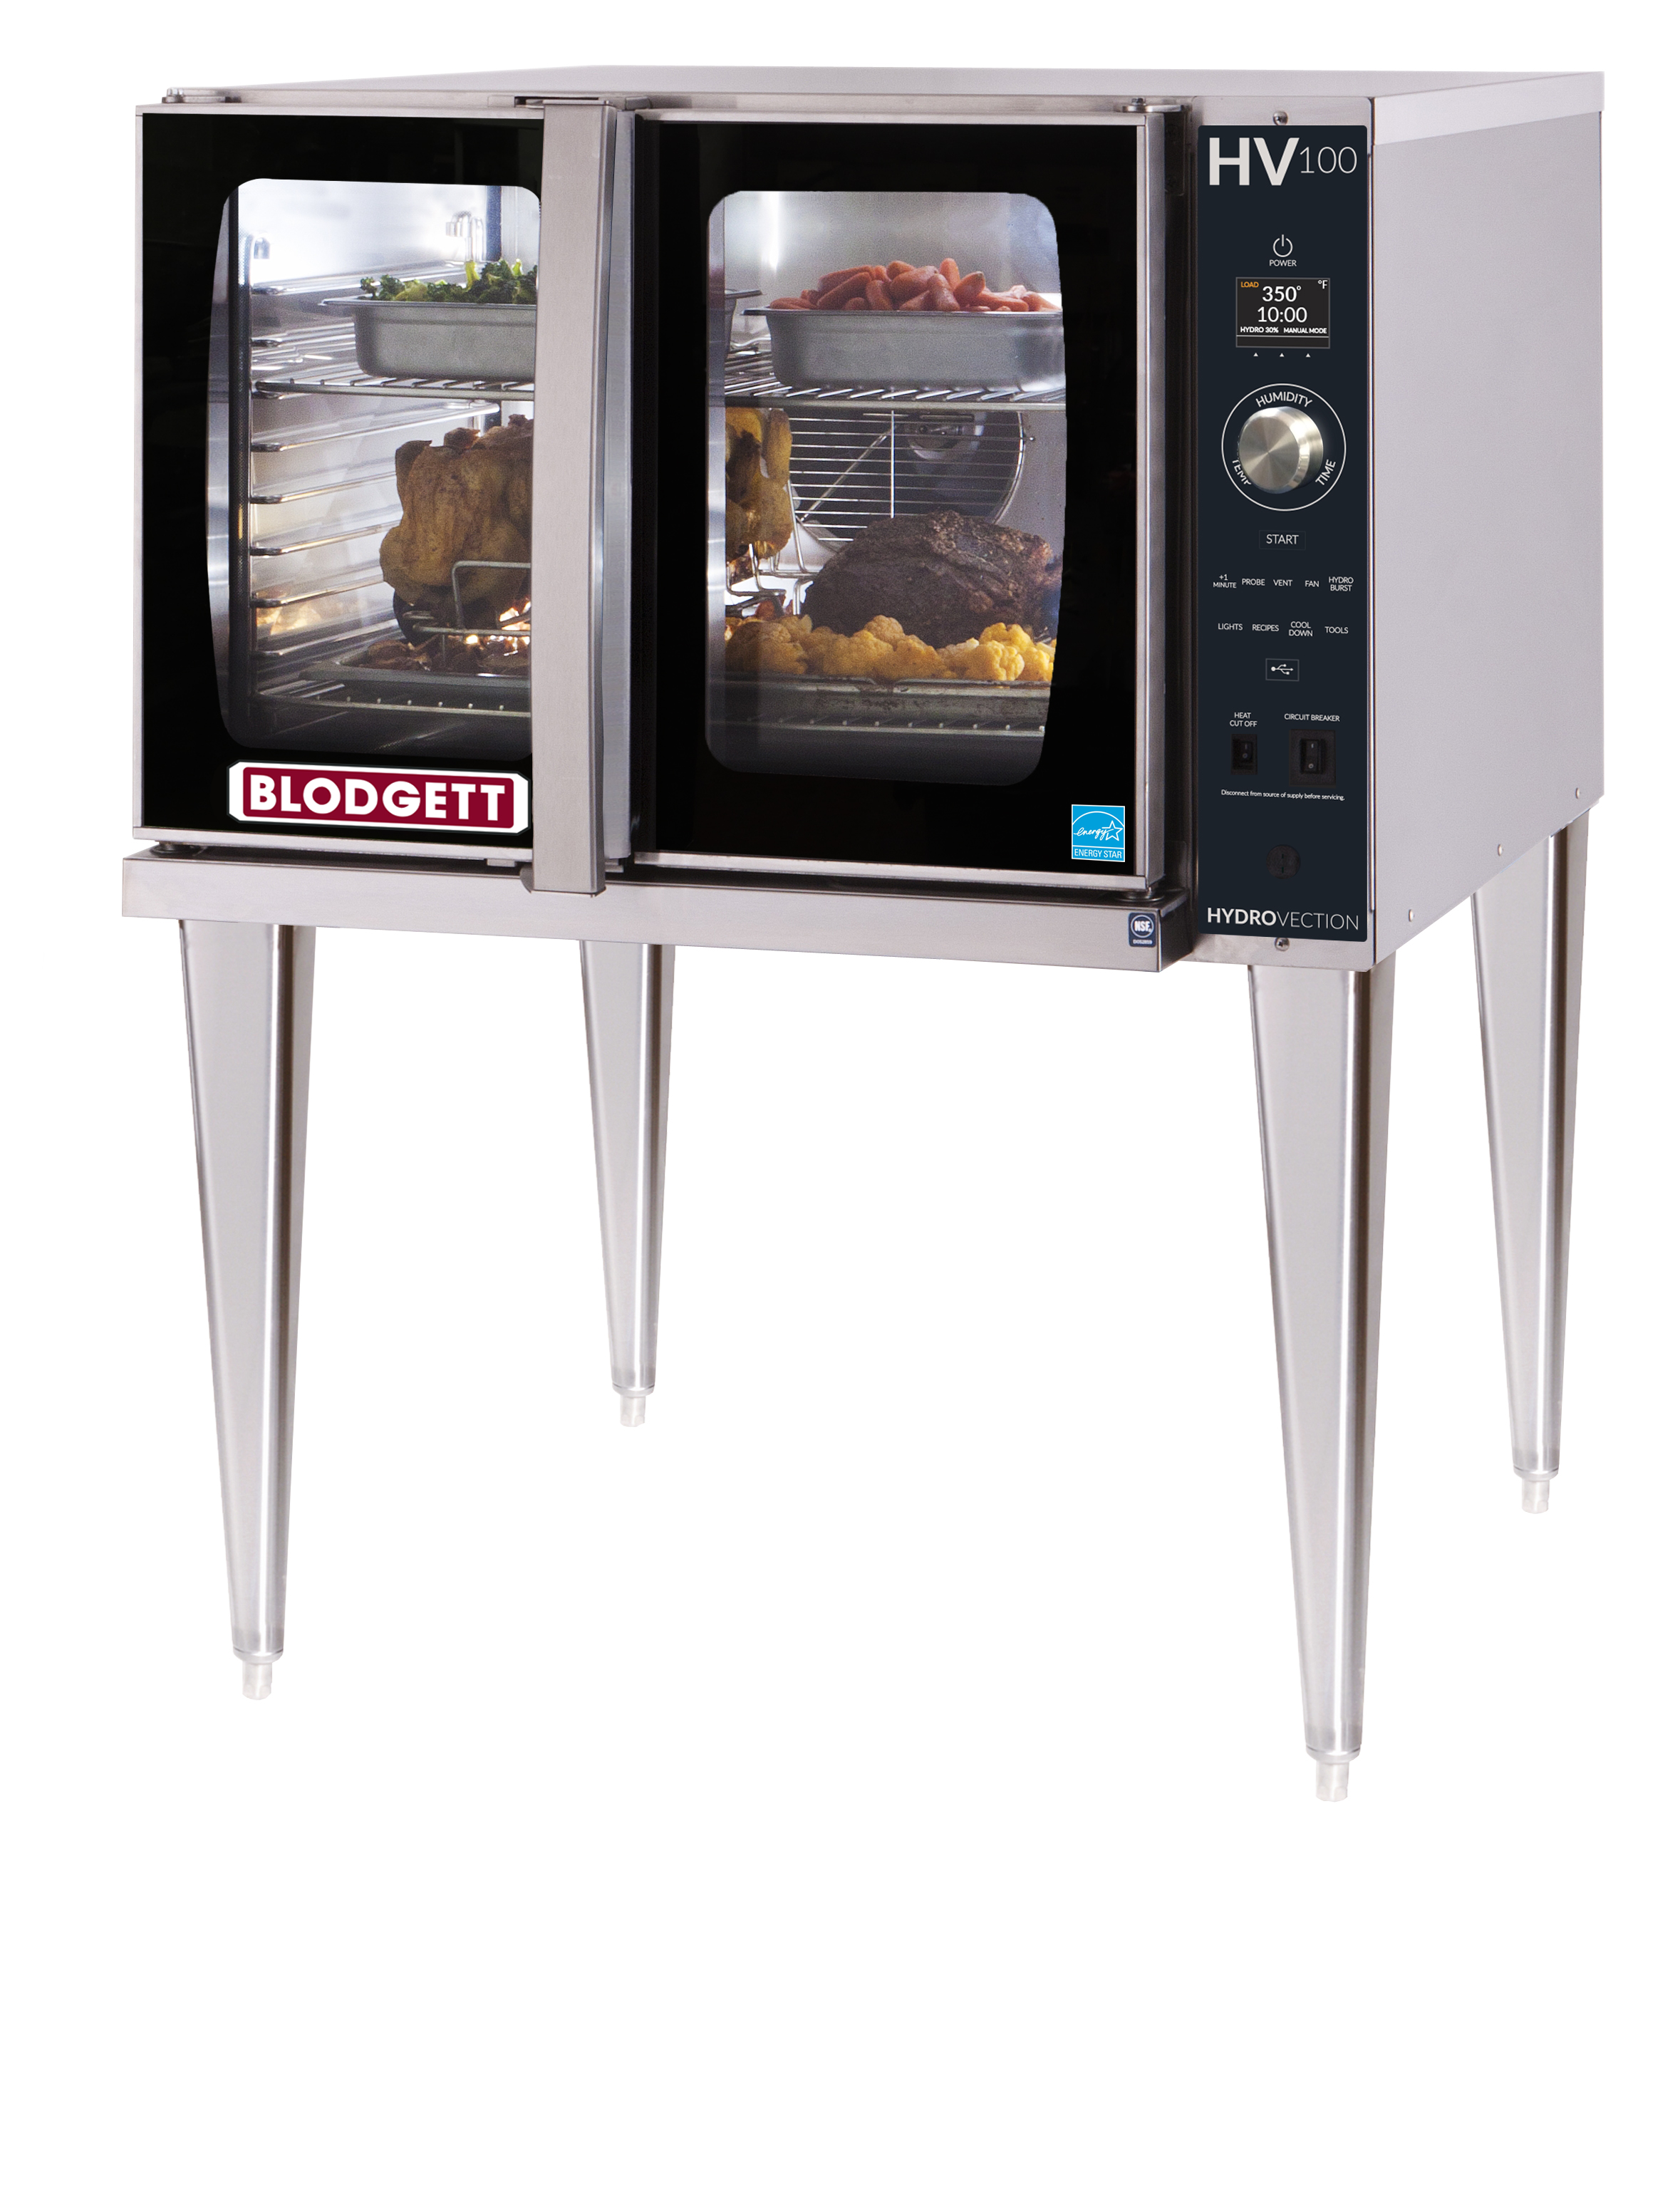 Blodgett HVH-100G SINGLE hydrovection oven